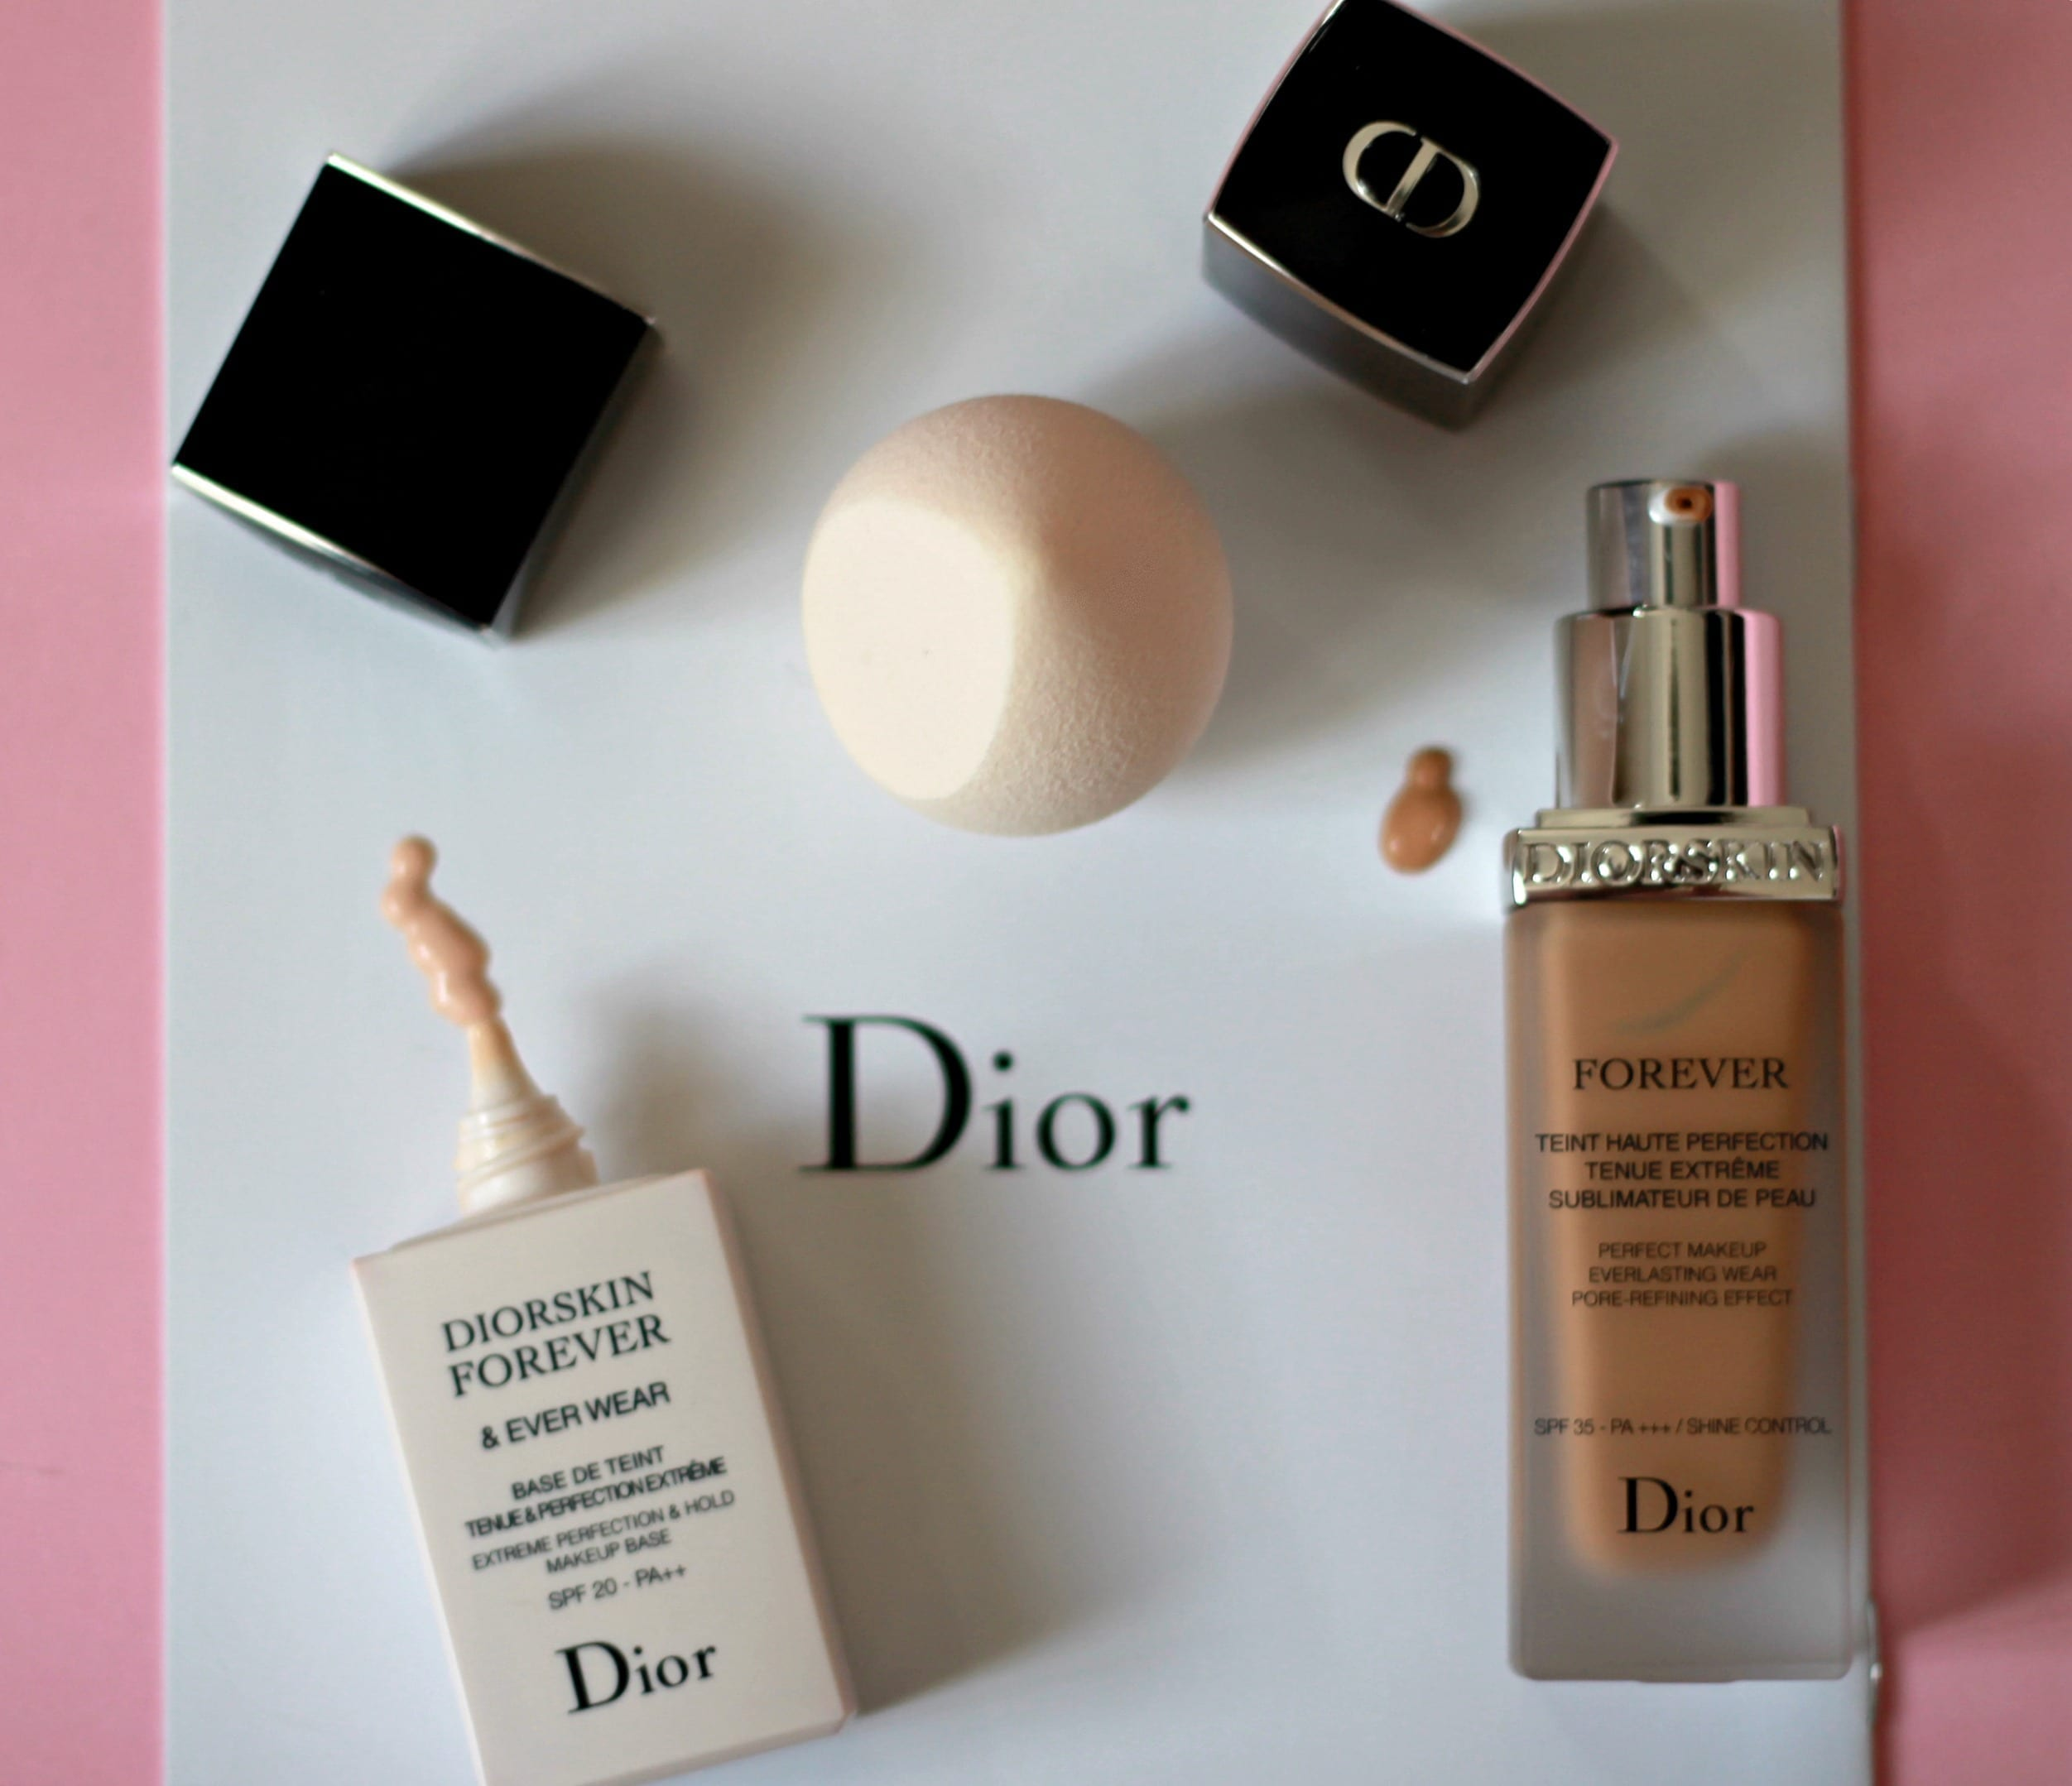 Diorskin forever haute perfection, theladycracy.it, diorskin forever, elisa bellino, fashion blog italia, fashion blogger italiane, fondotinta dior, novità beauty dior, dior backstage blender